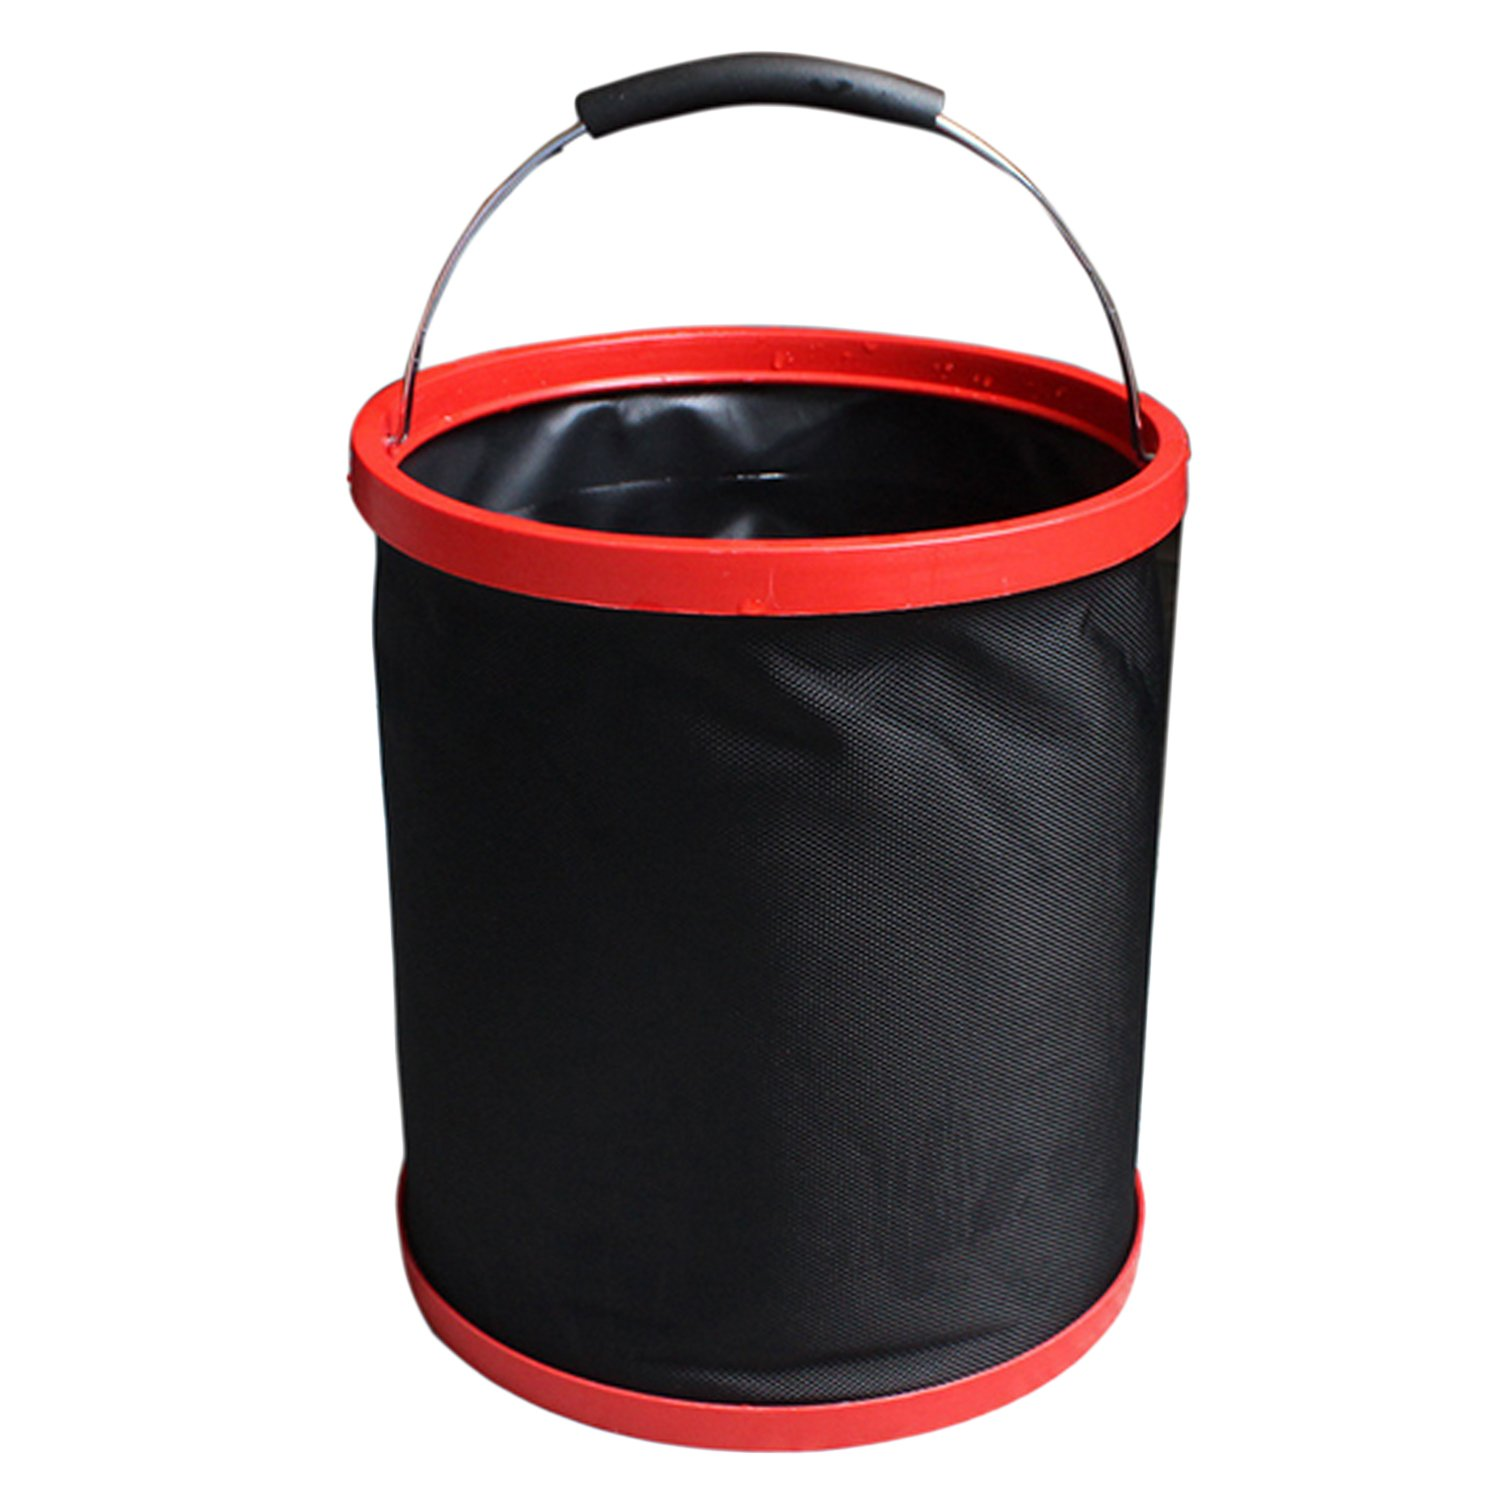 Sopear Portable 12L Multifuctional Collapsible Folding Bucket Water Carrier No Leakage for Beach Travel Camping Fishing Car Washing